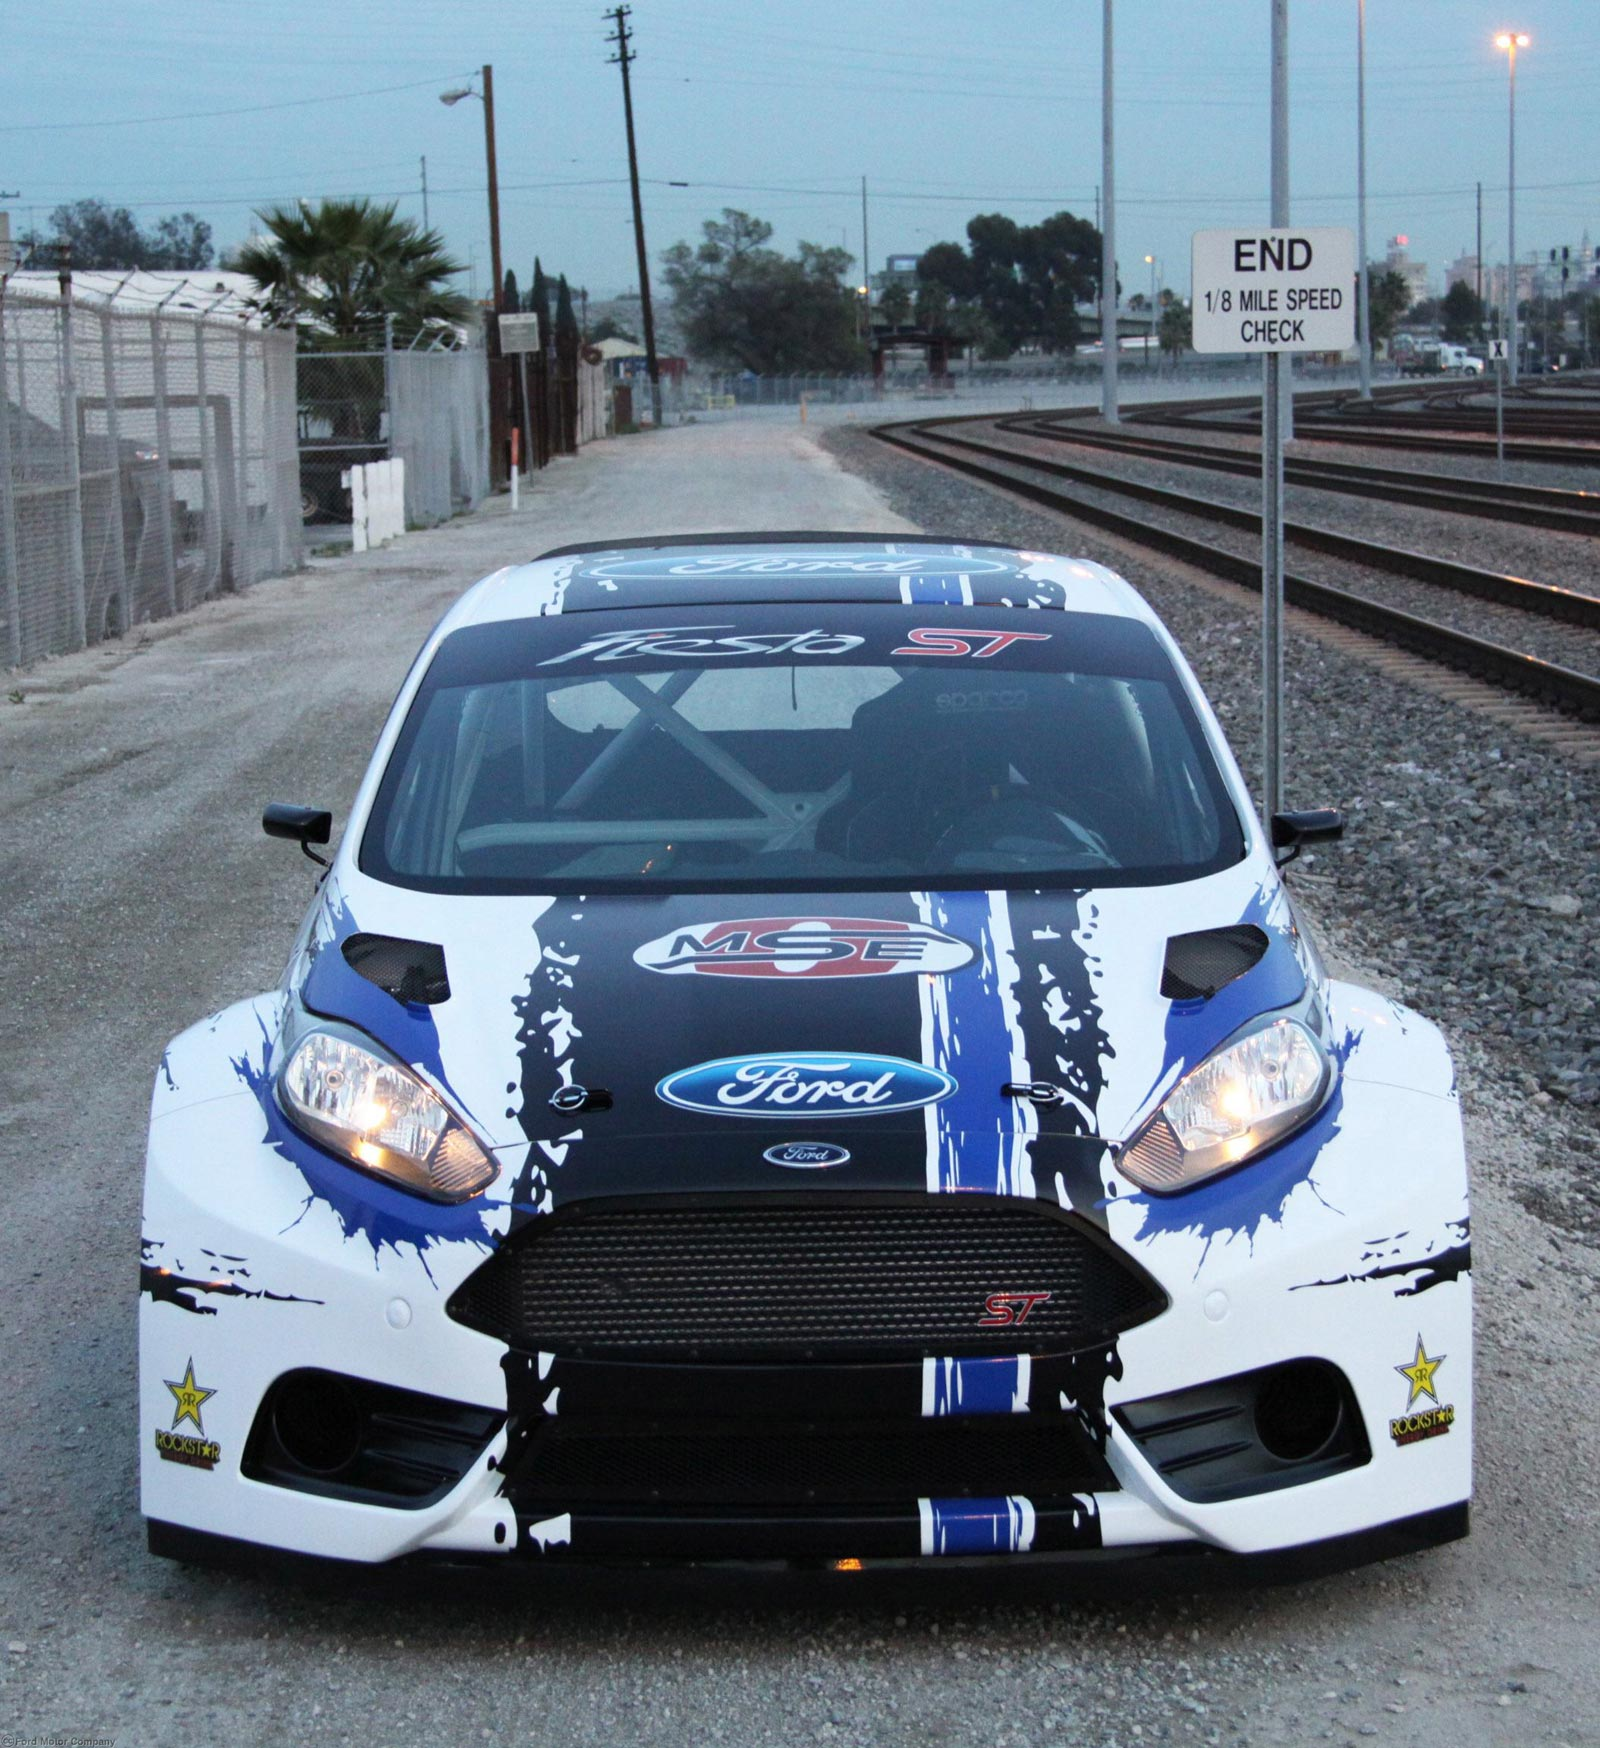 Champion Motors International: Ford Reveals Fiesta ST Race Car, Points At Road Ahead For